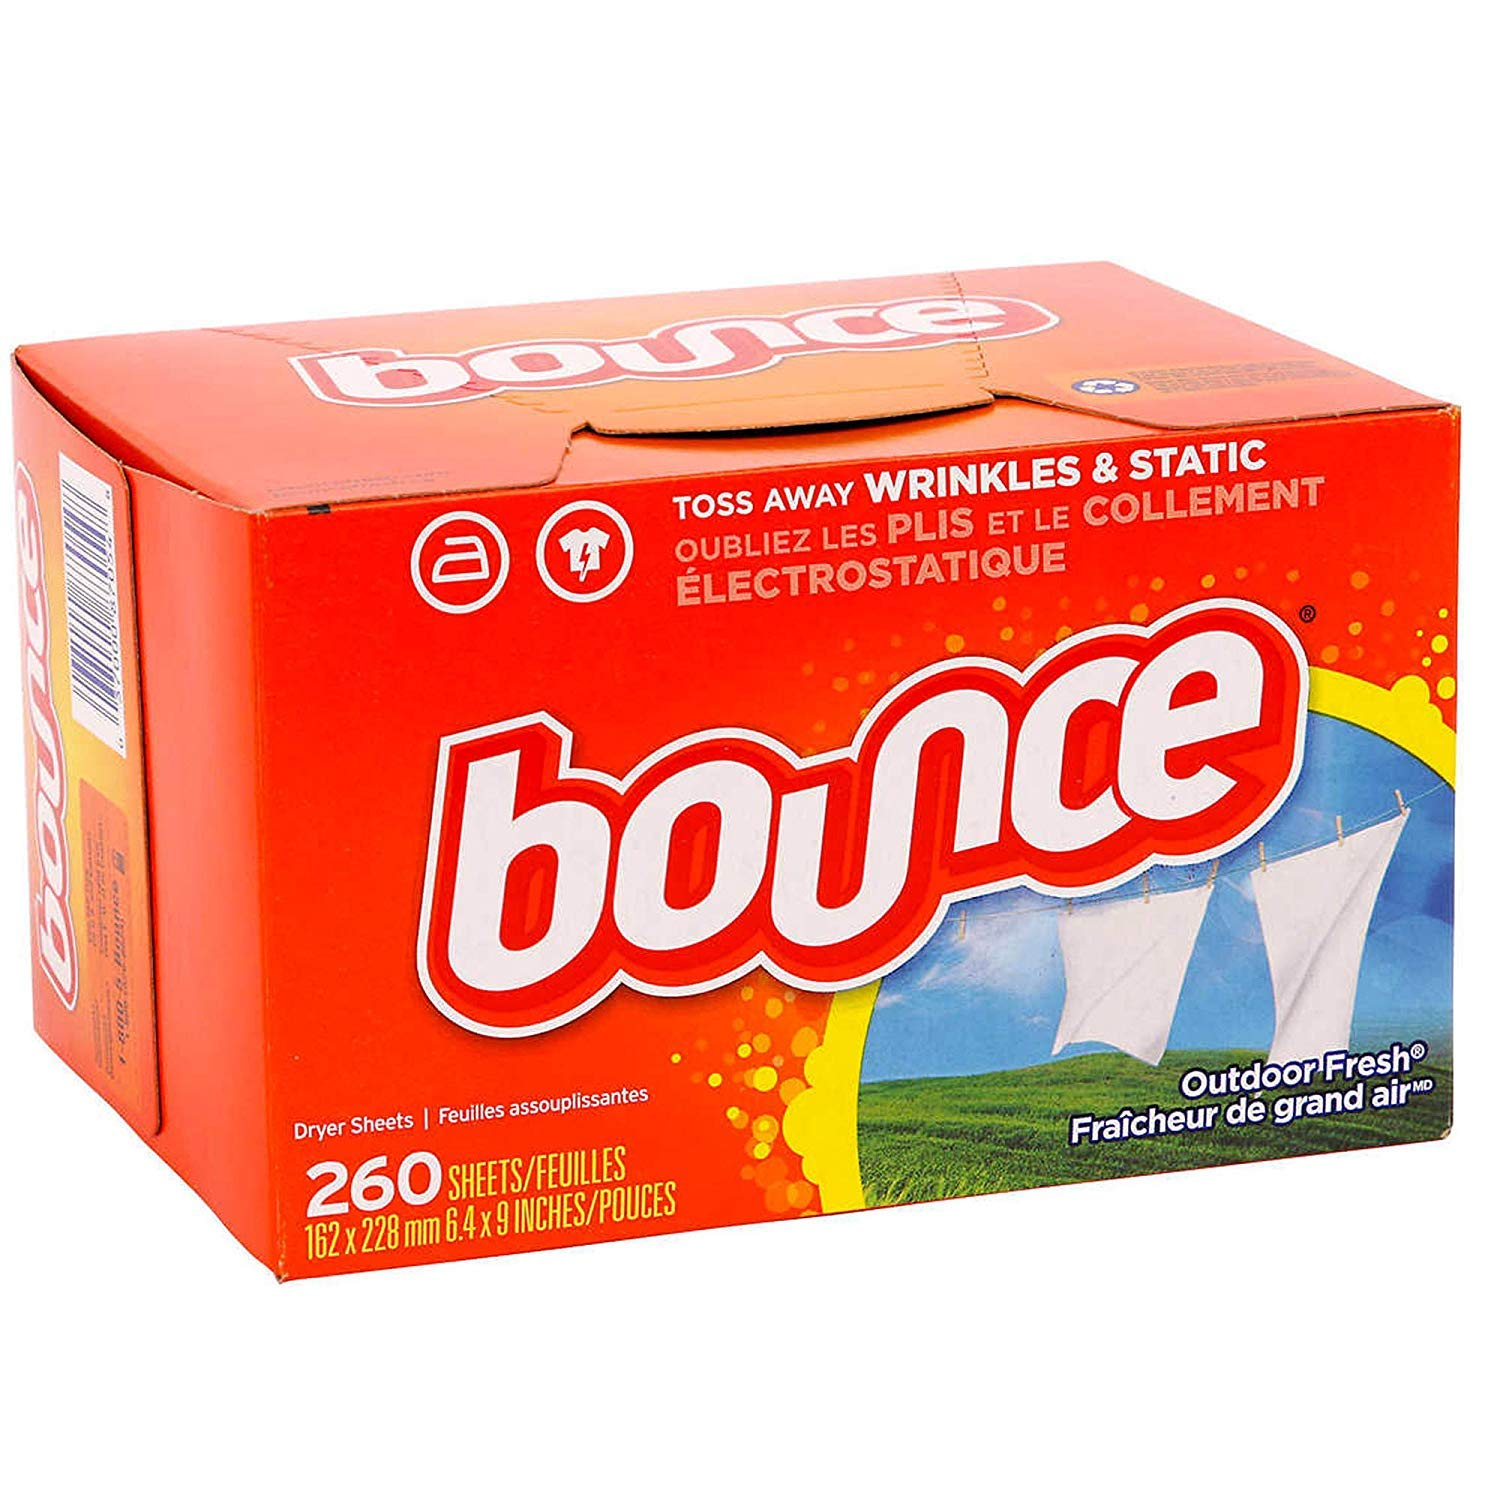 Bounce Fabric Softener Dryer Sheets | Outdoor Fresh Scent – 260 Sheets – Keeps Clothing Soft, Fresh and Smelling Great